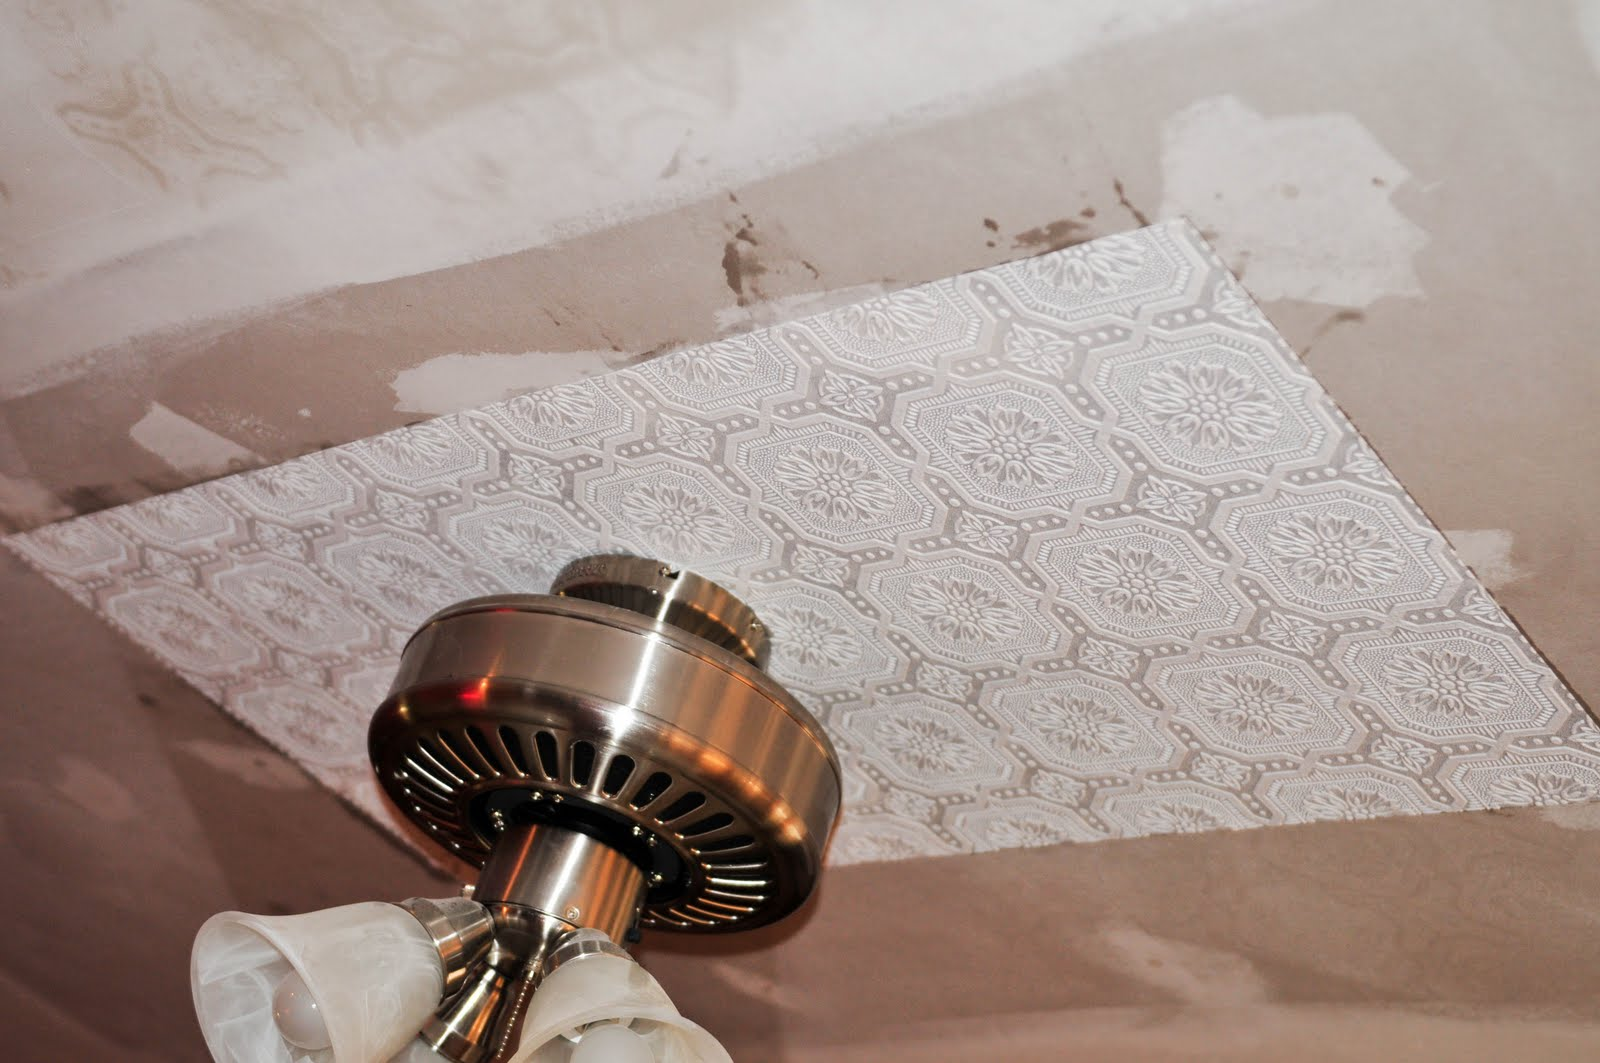 Can you wallpaper ceiling tiles wallpapersafari - Can you wallpaper drop ceiling tiles ...